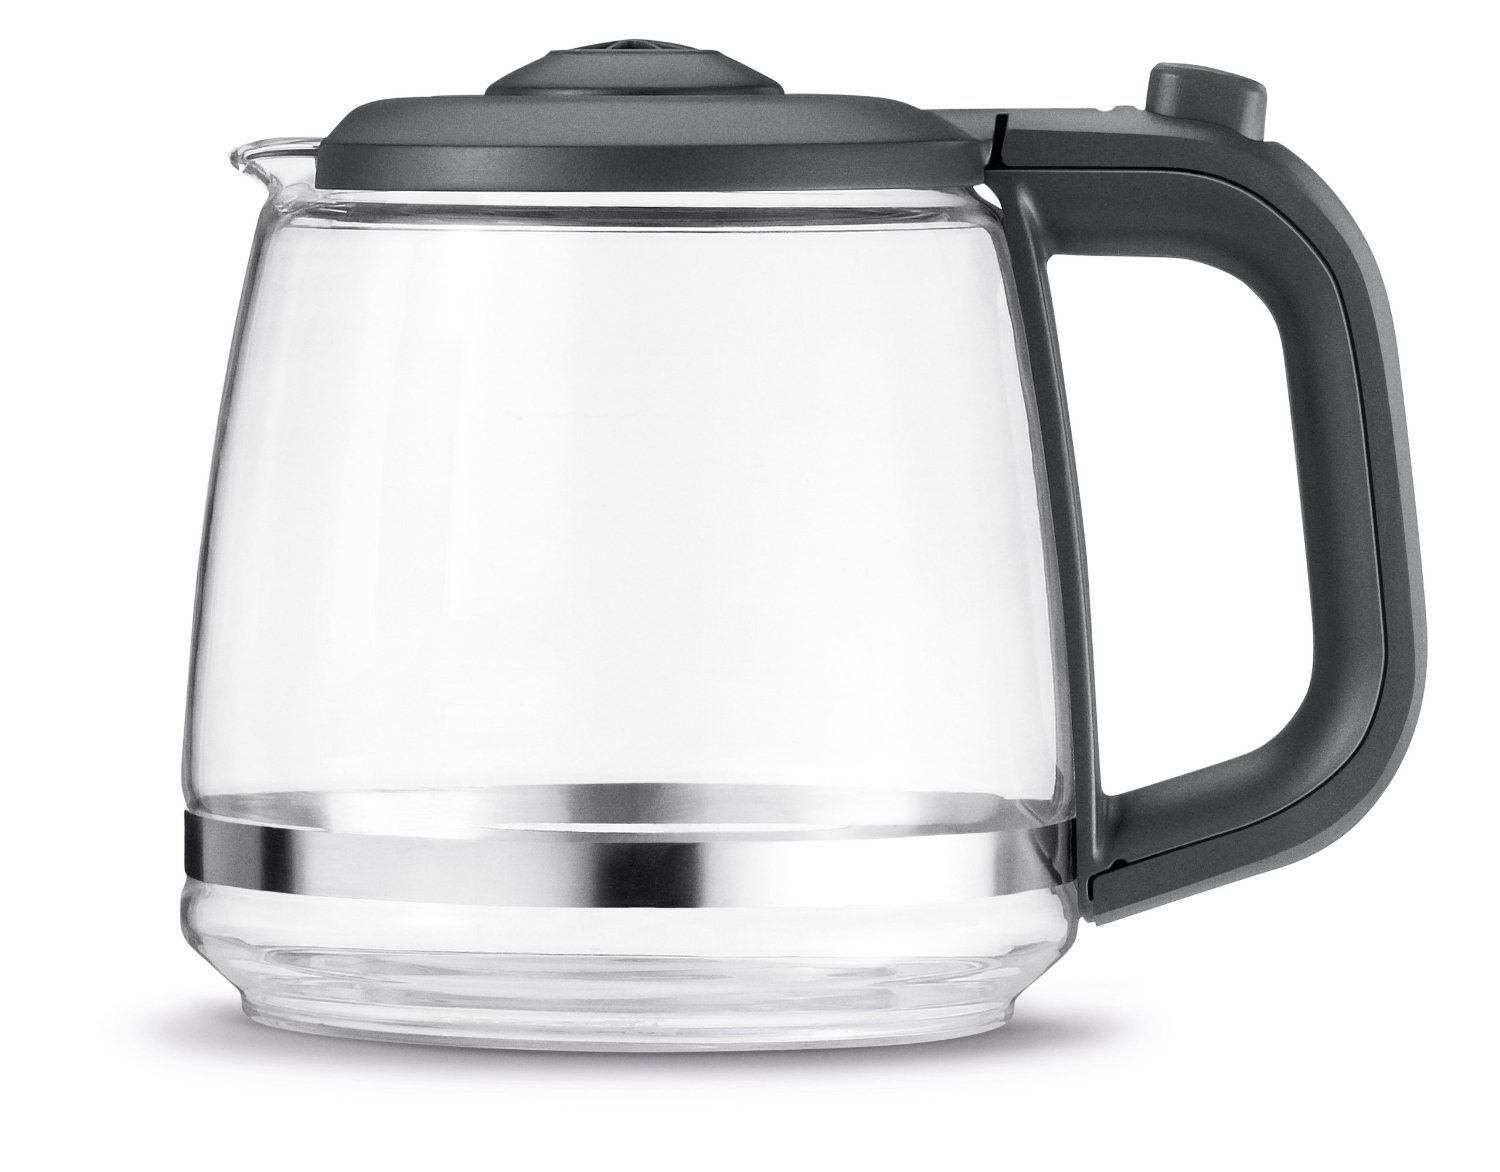 Delonghi Coffee Maker Carafe Replacement : Breville Replacement Carafes